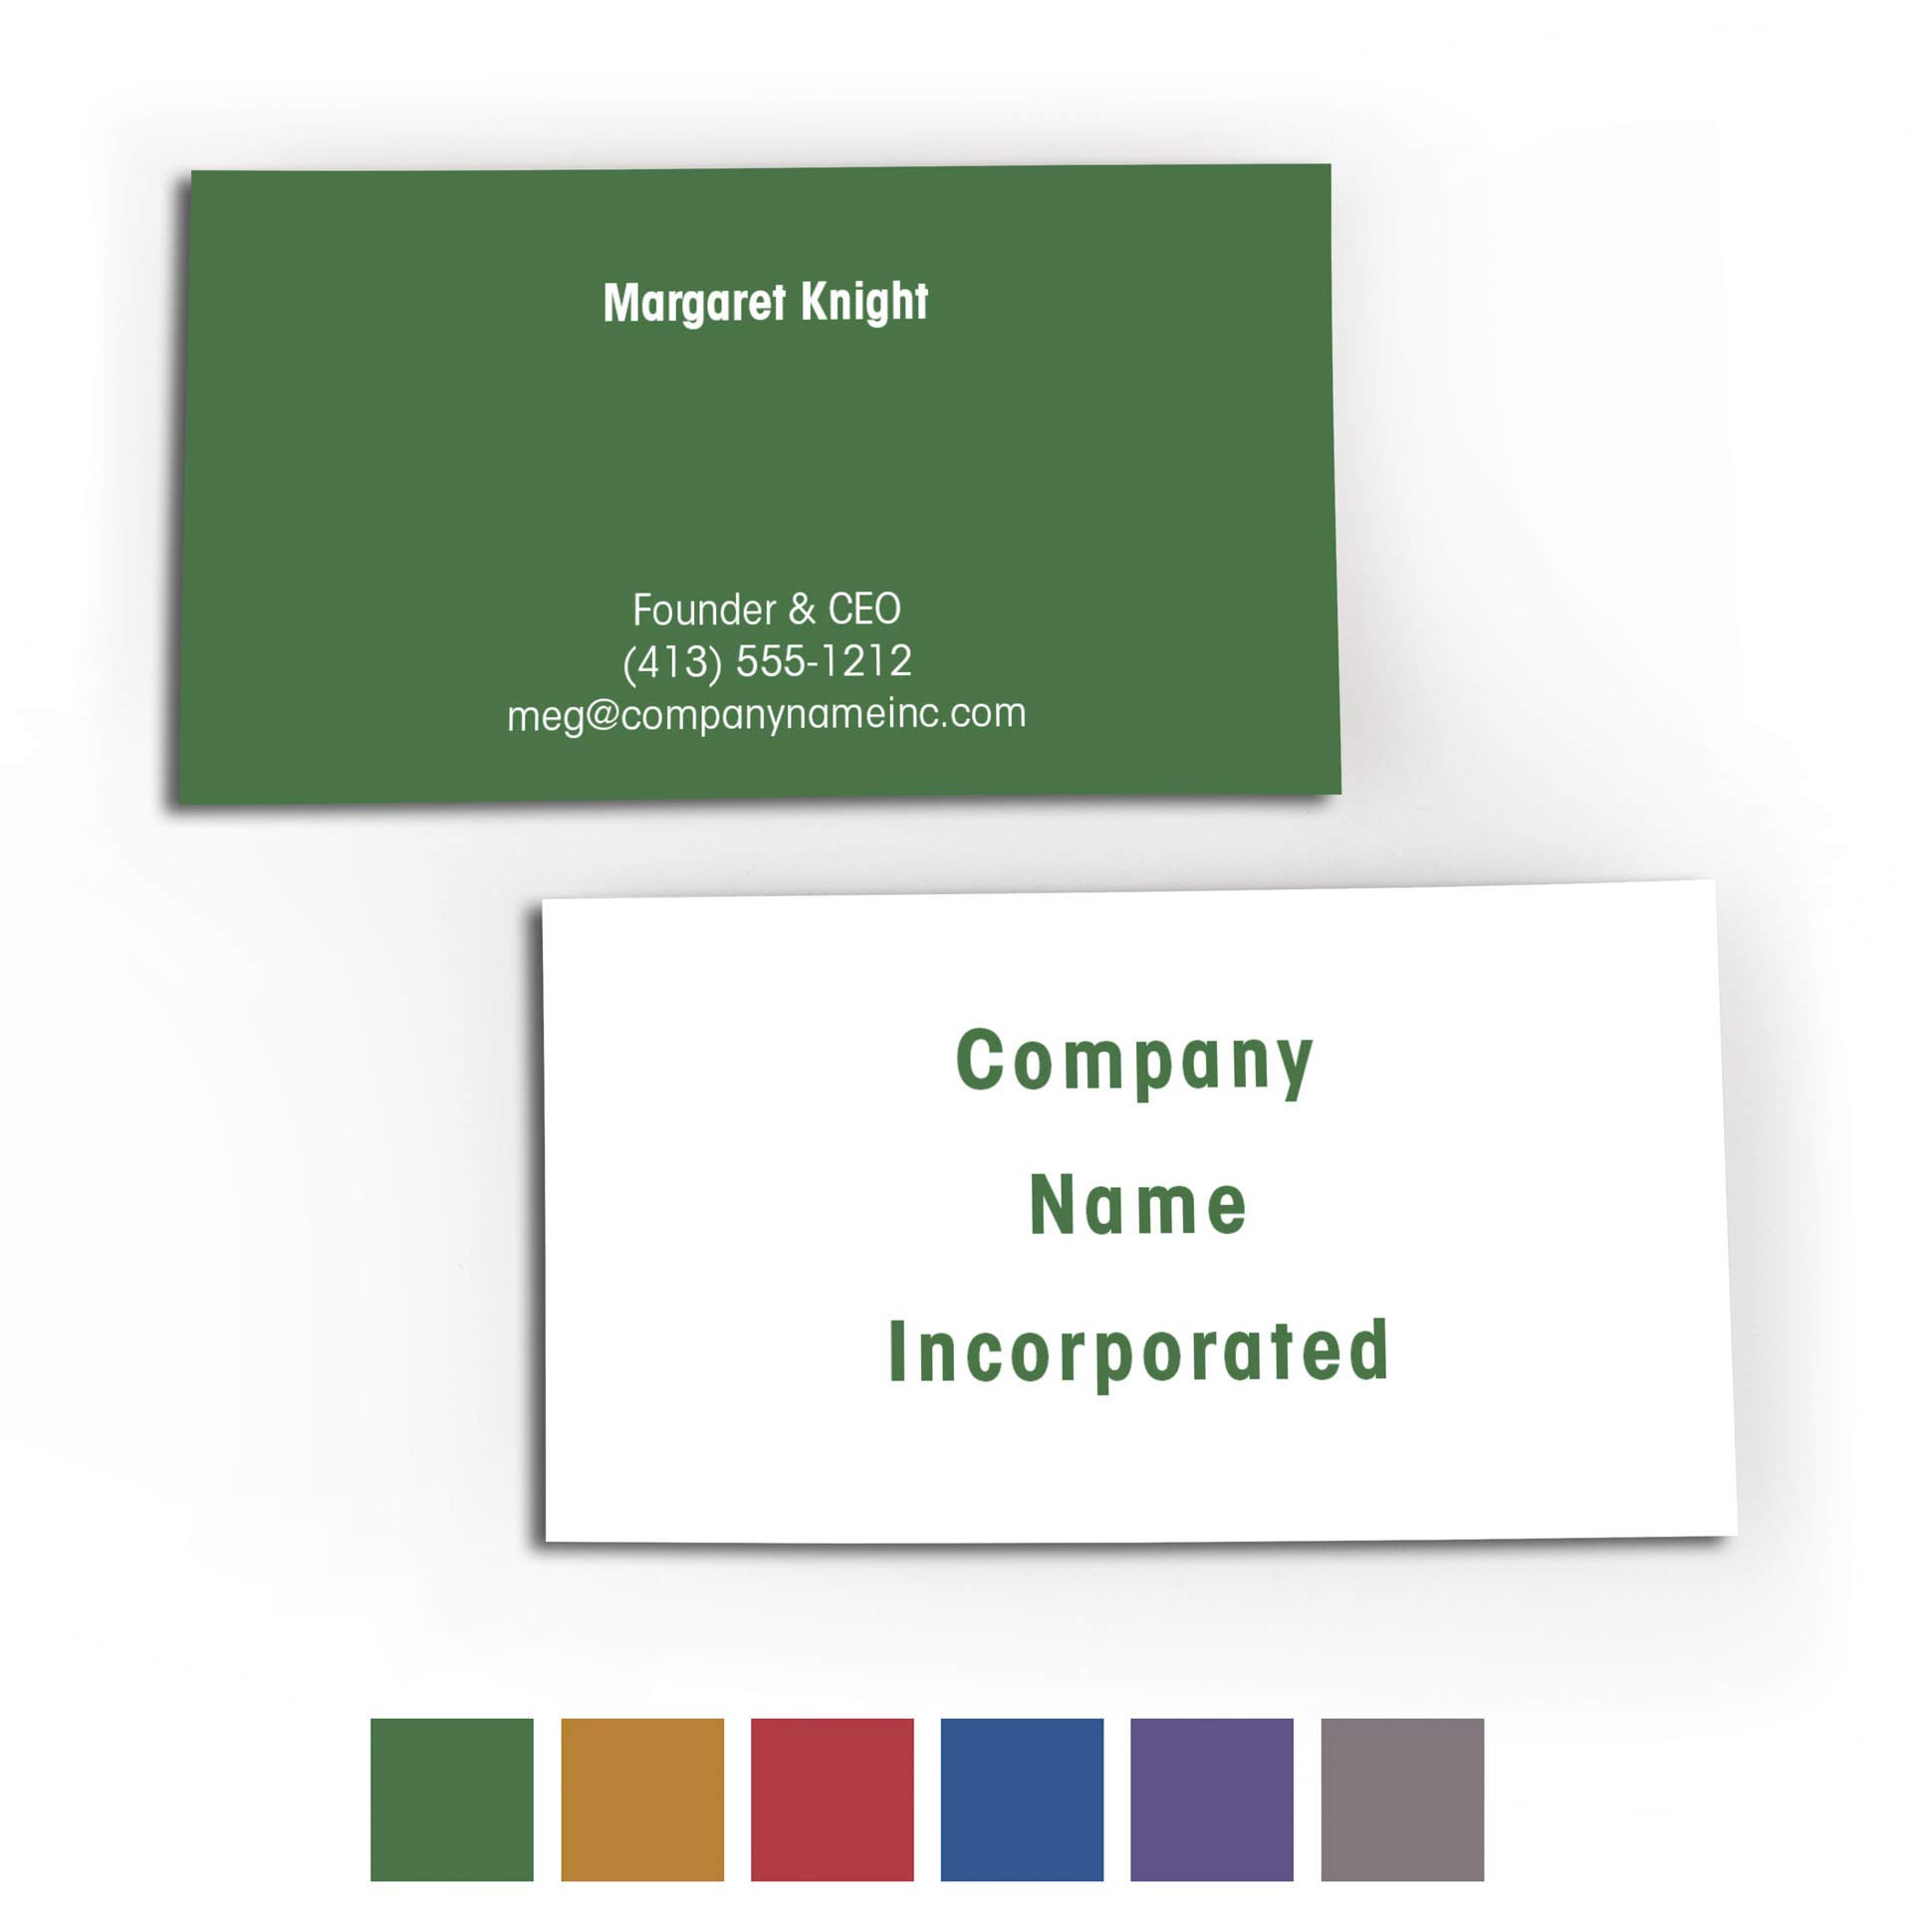 Buttonsmith Custom Premium Printed Business Cards - 3.5''x2'' - Quantity 500 - Double-Sided, 110 lb Smooth Touch - Green - Made in The USA by Buttonsmith